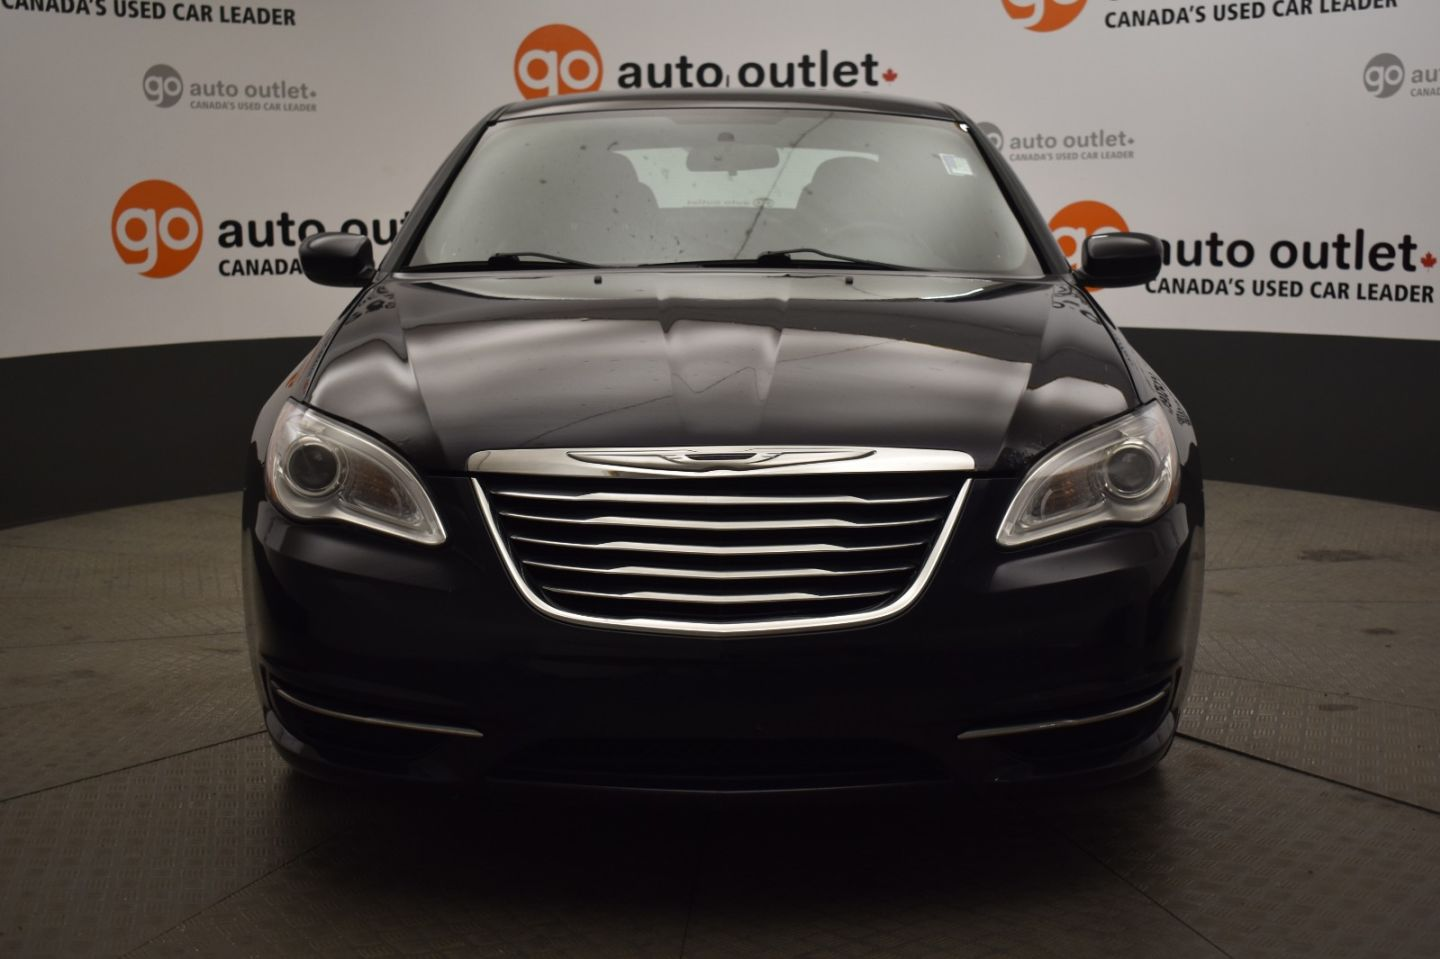 2012 Chrysler 200 LX for sale in Leduc, Alberta